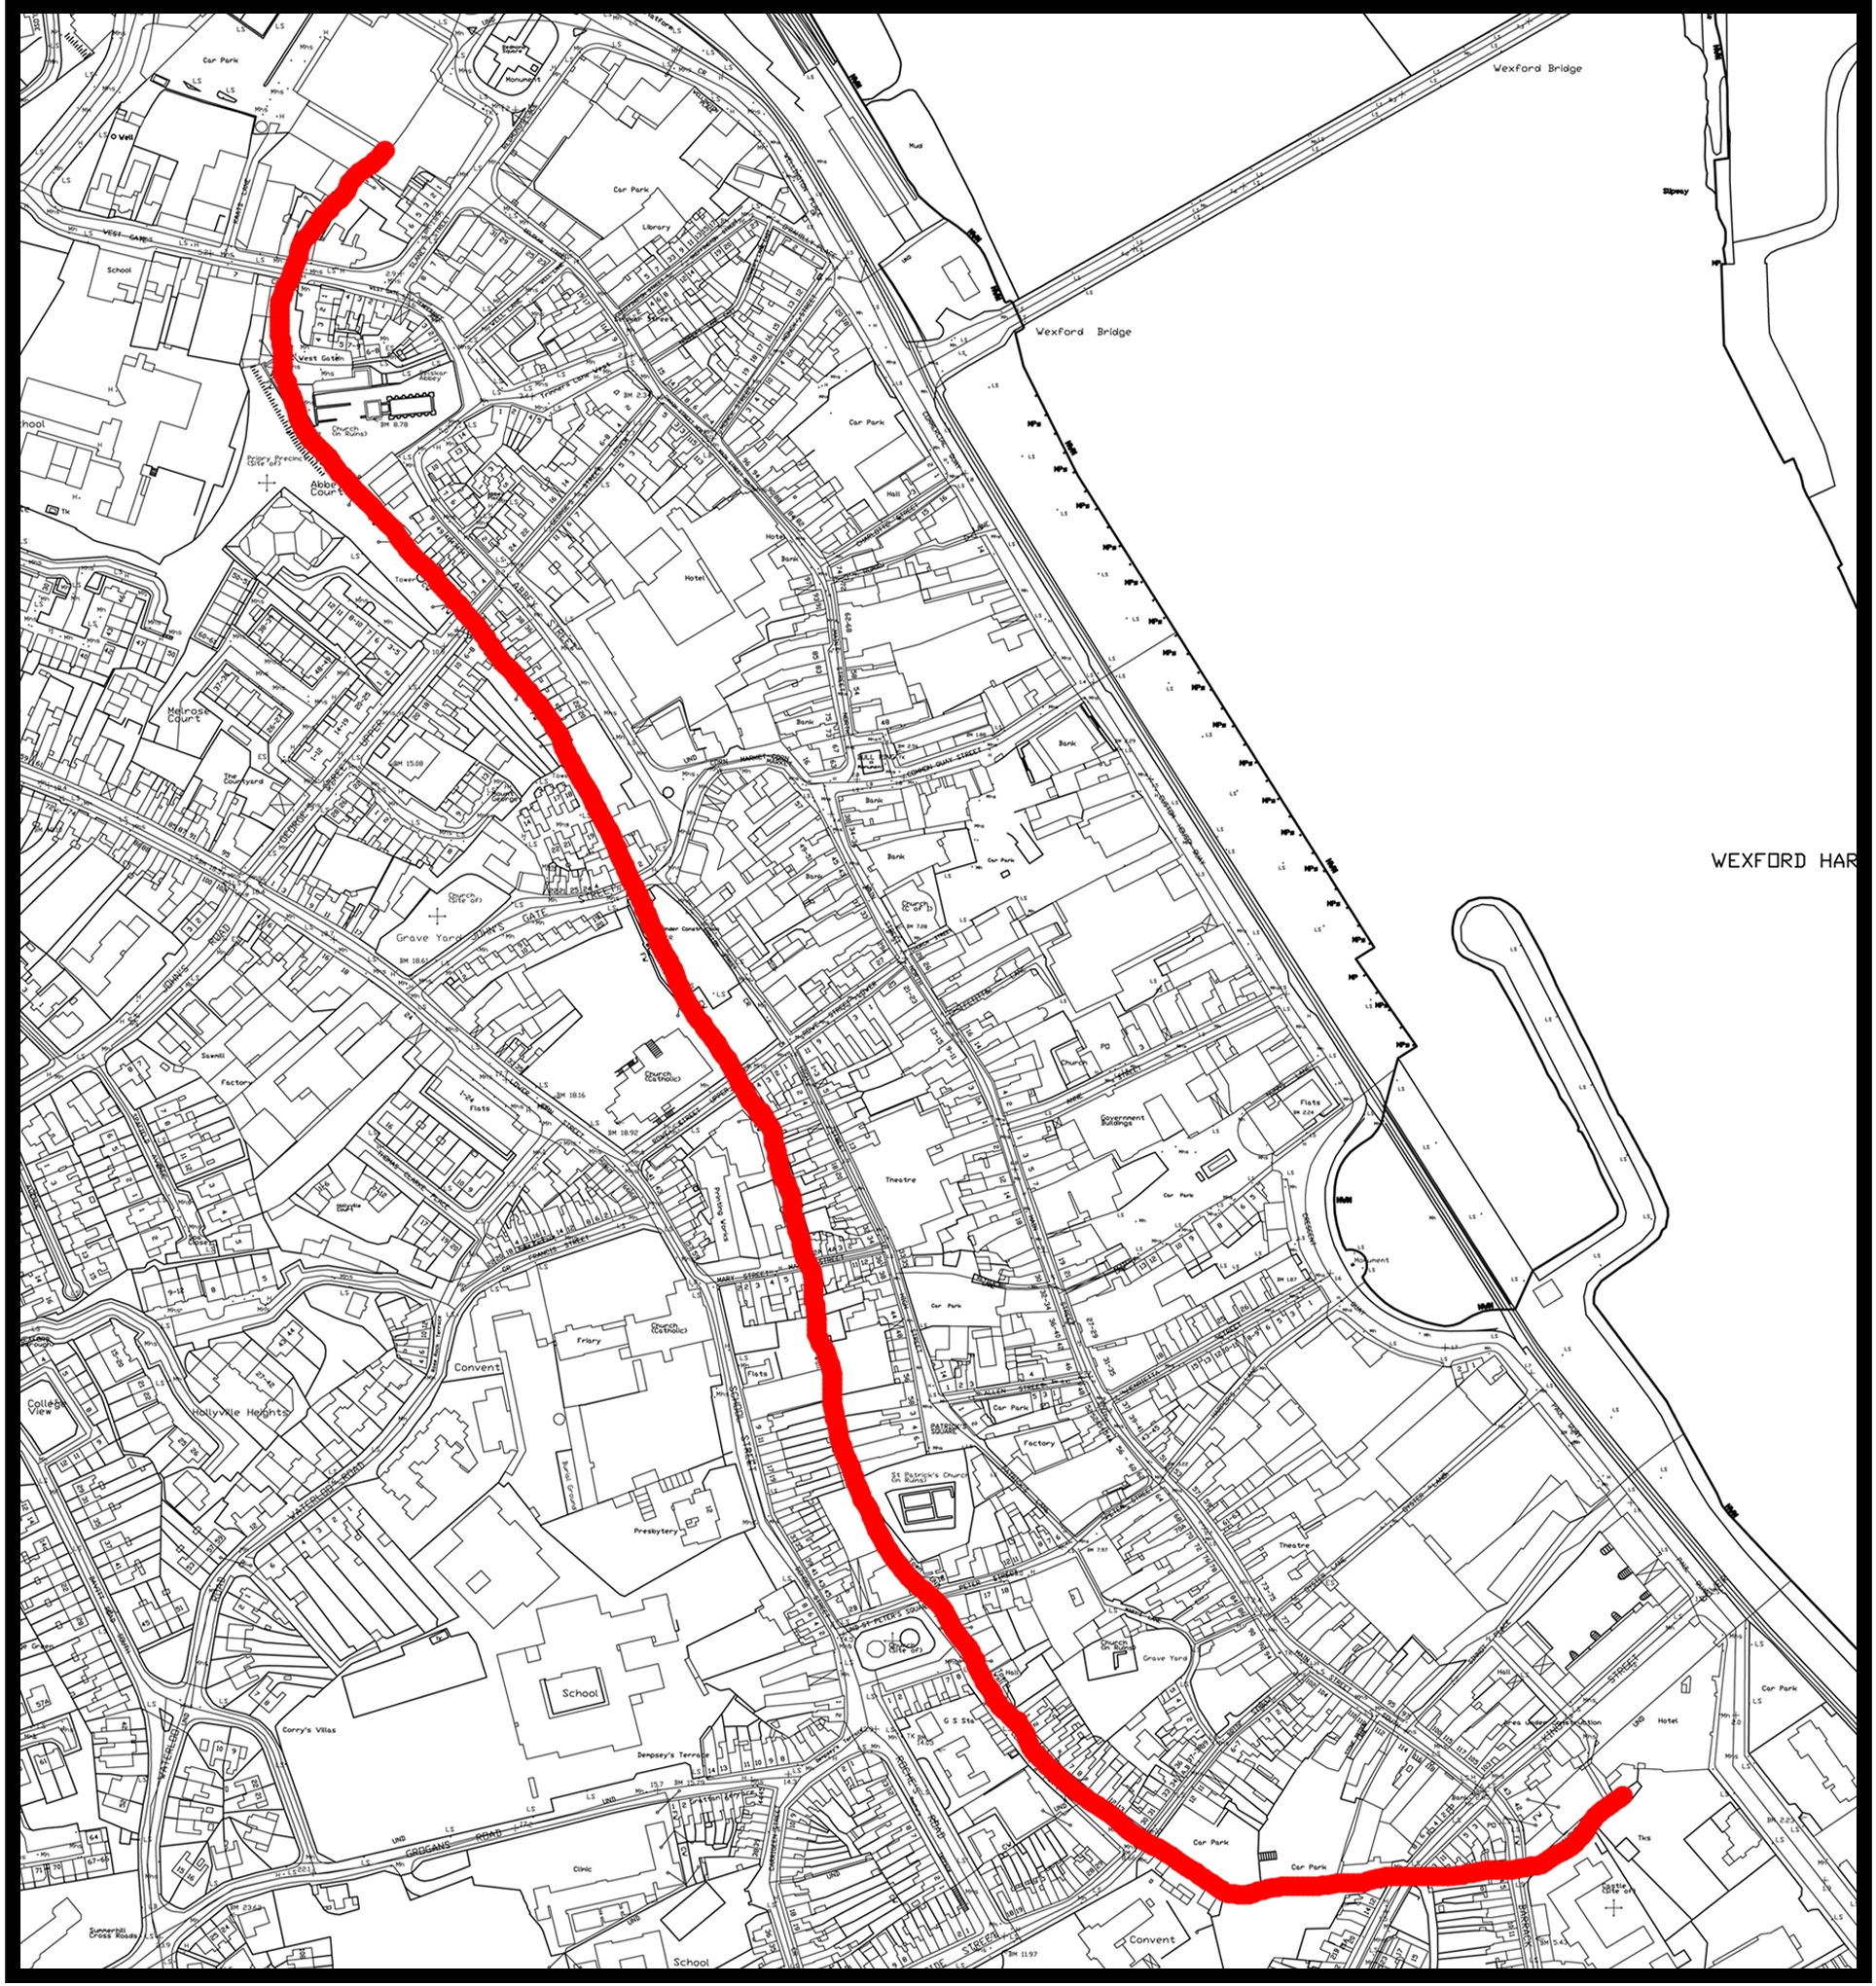 Ordance Survey Map of Wexford Town showing line of town wall